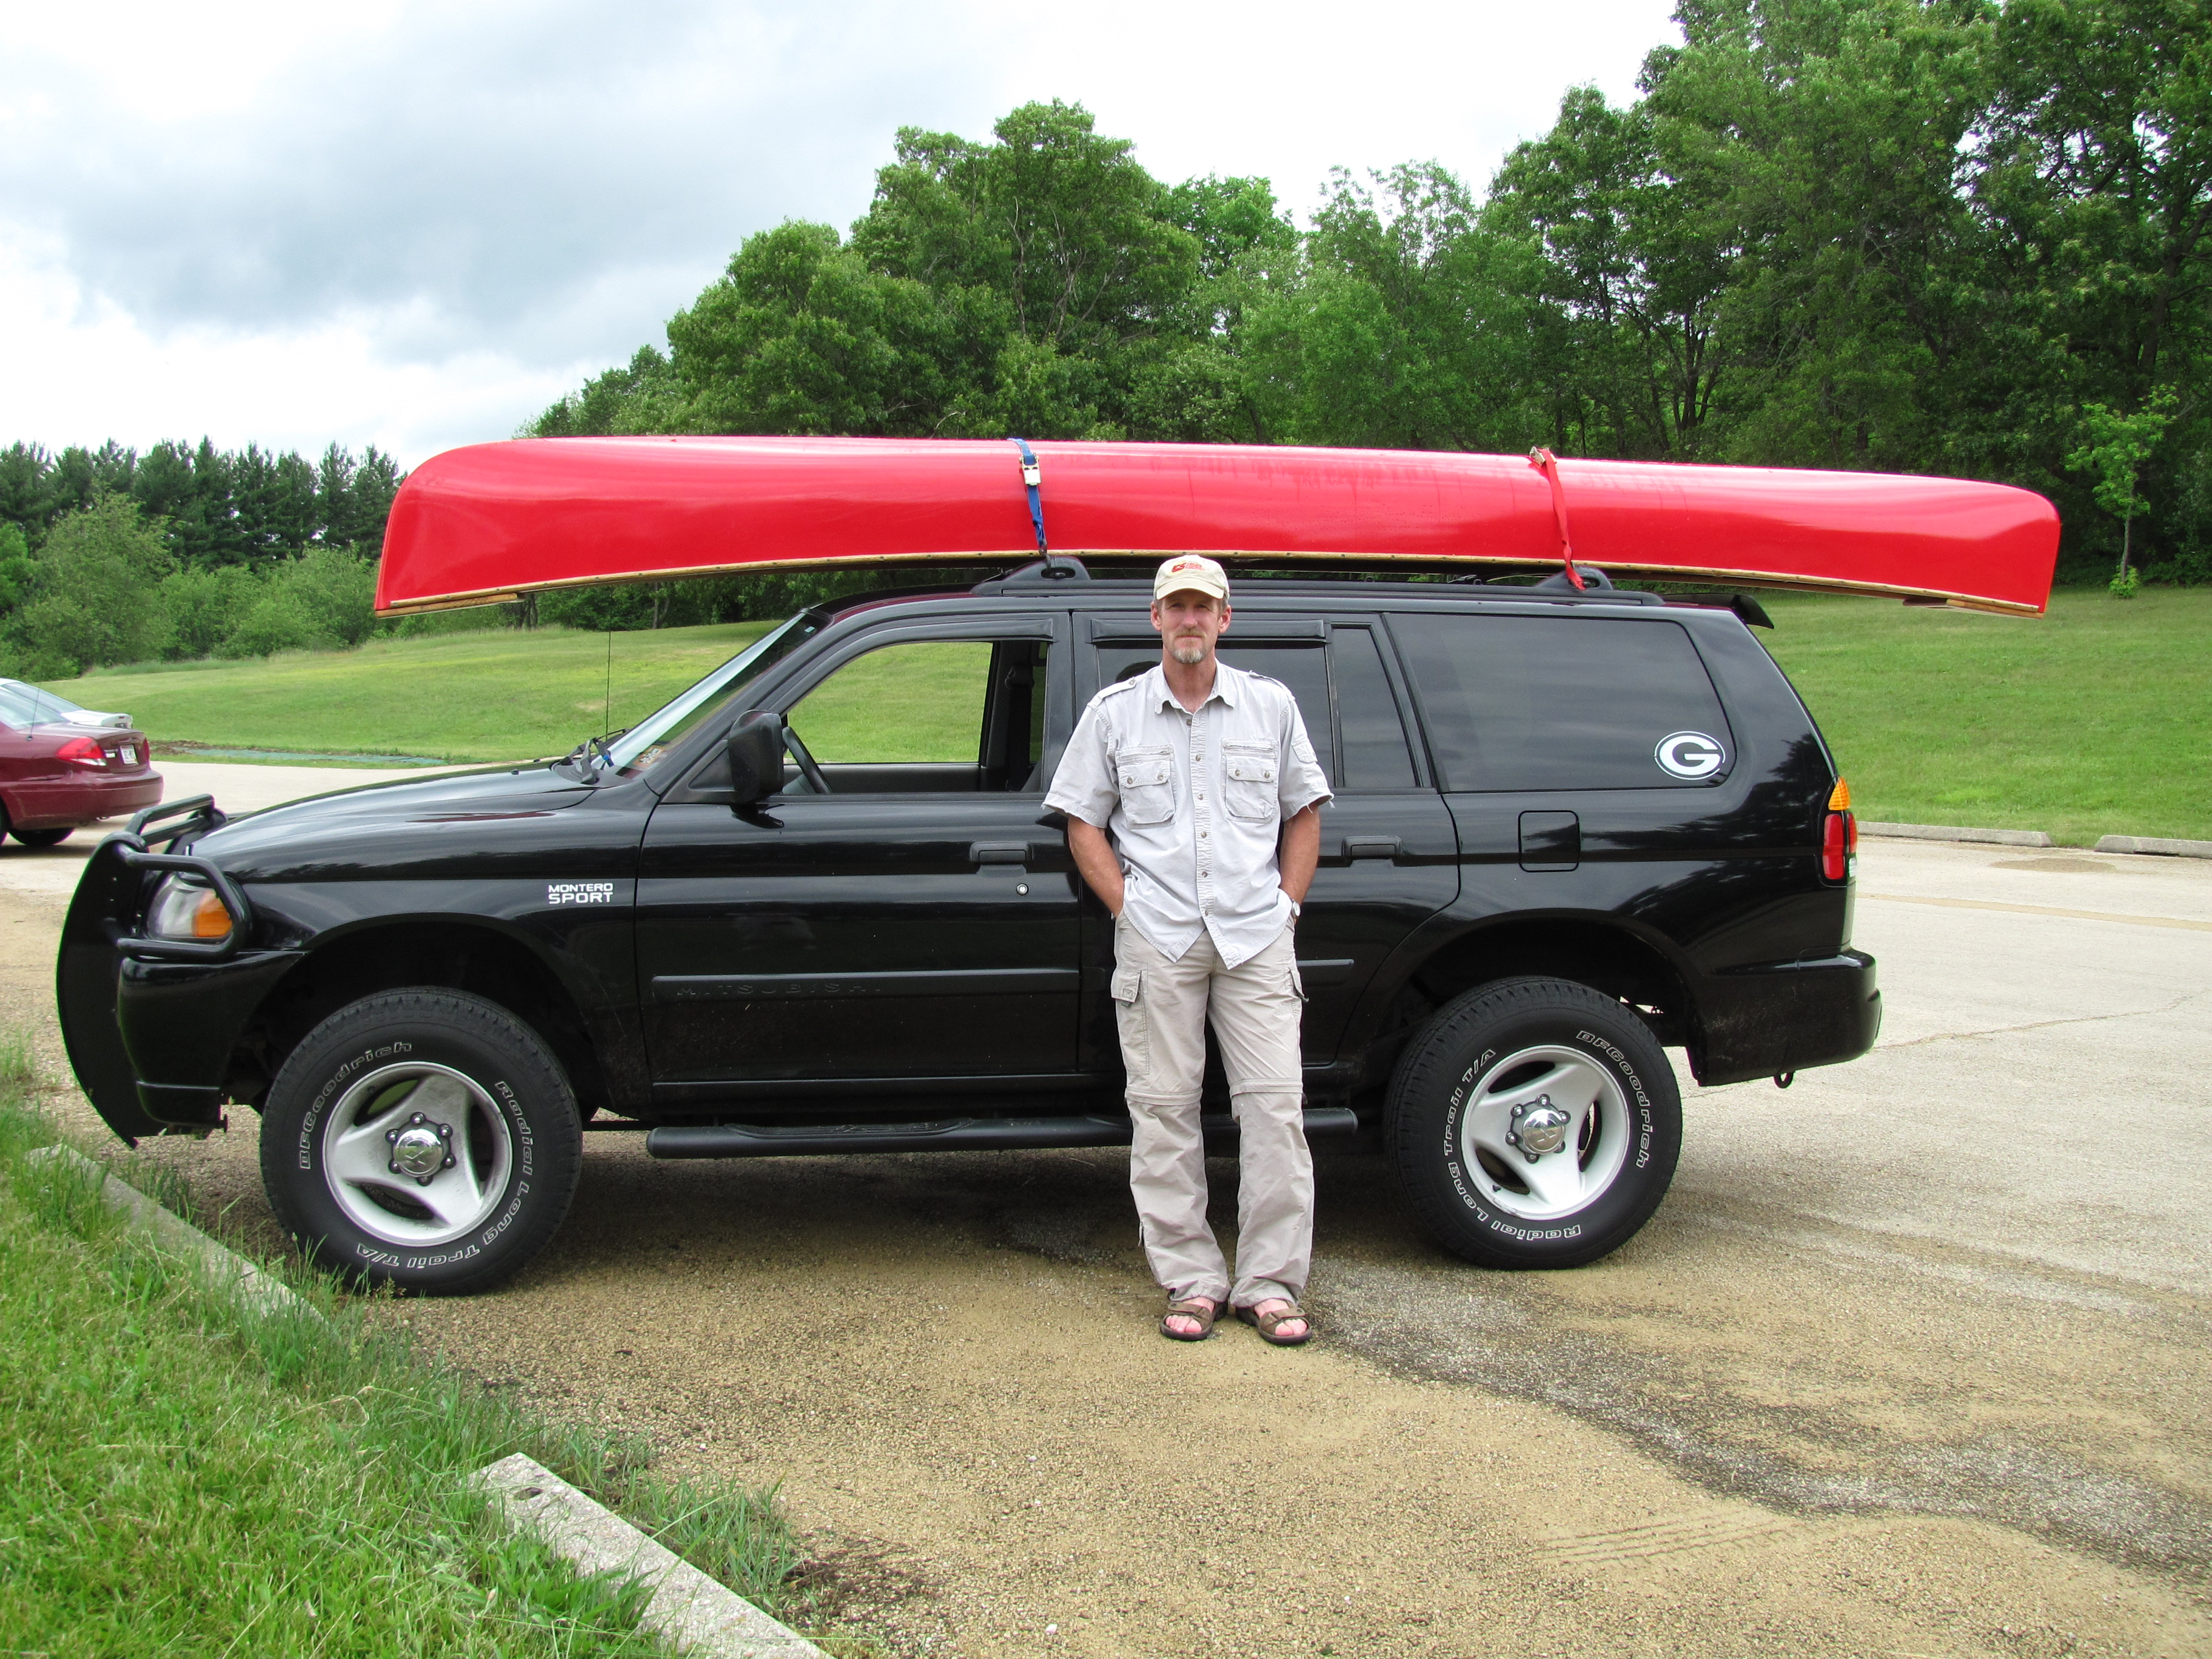 thread that the company from janesville wi no longer exists but would like to learn more about it a picture of the canoe can be seen in my profile picture